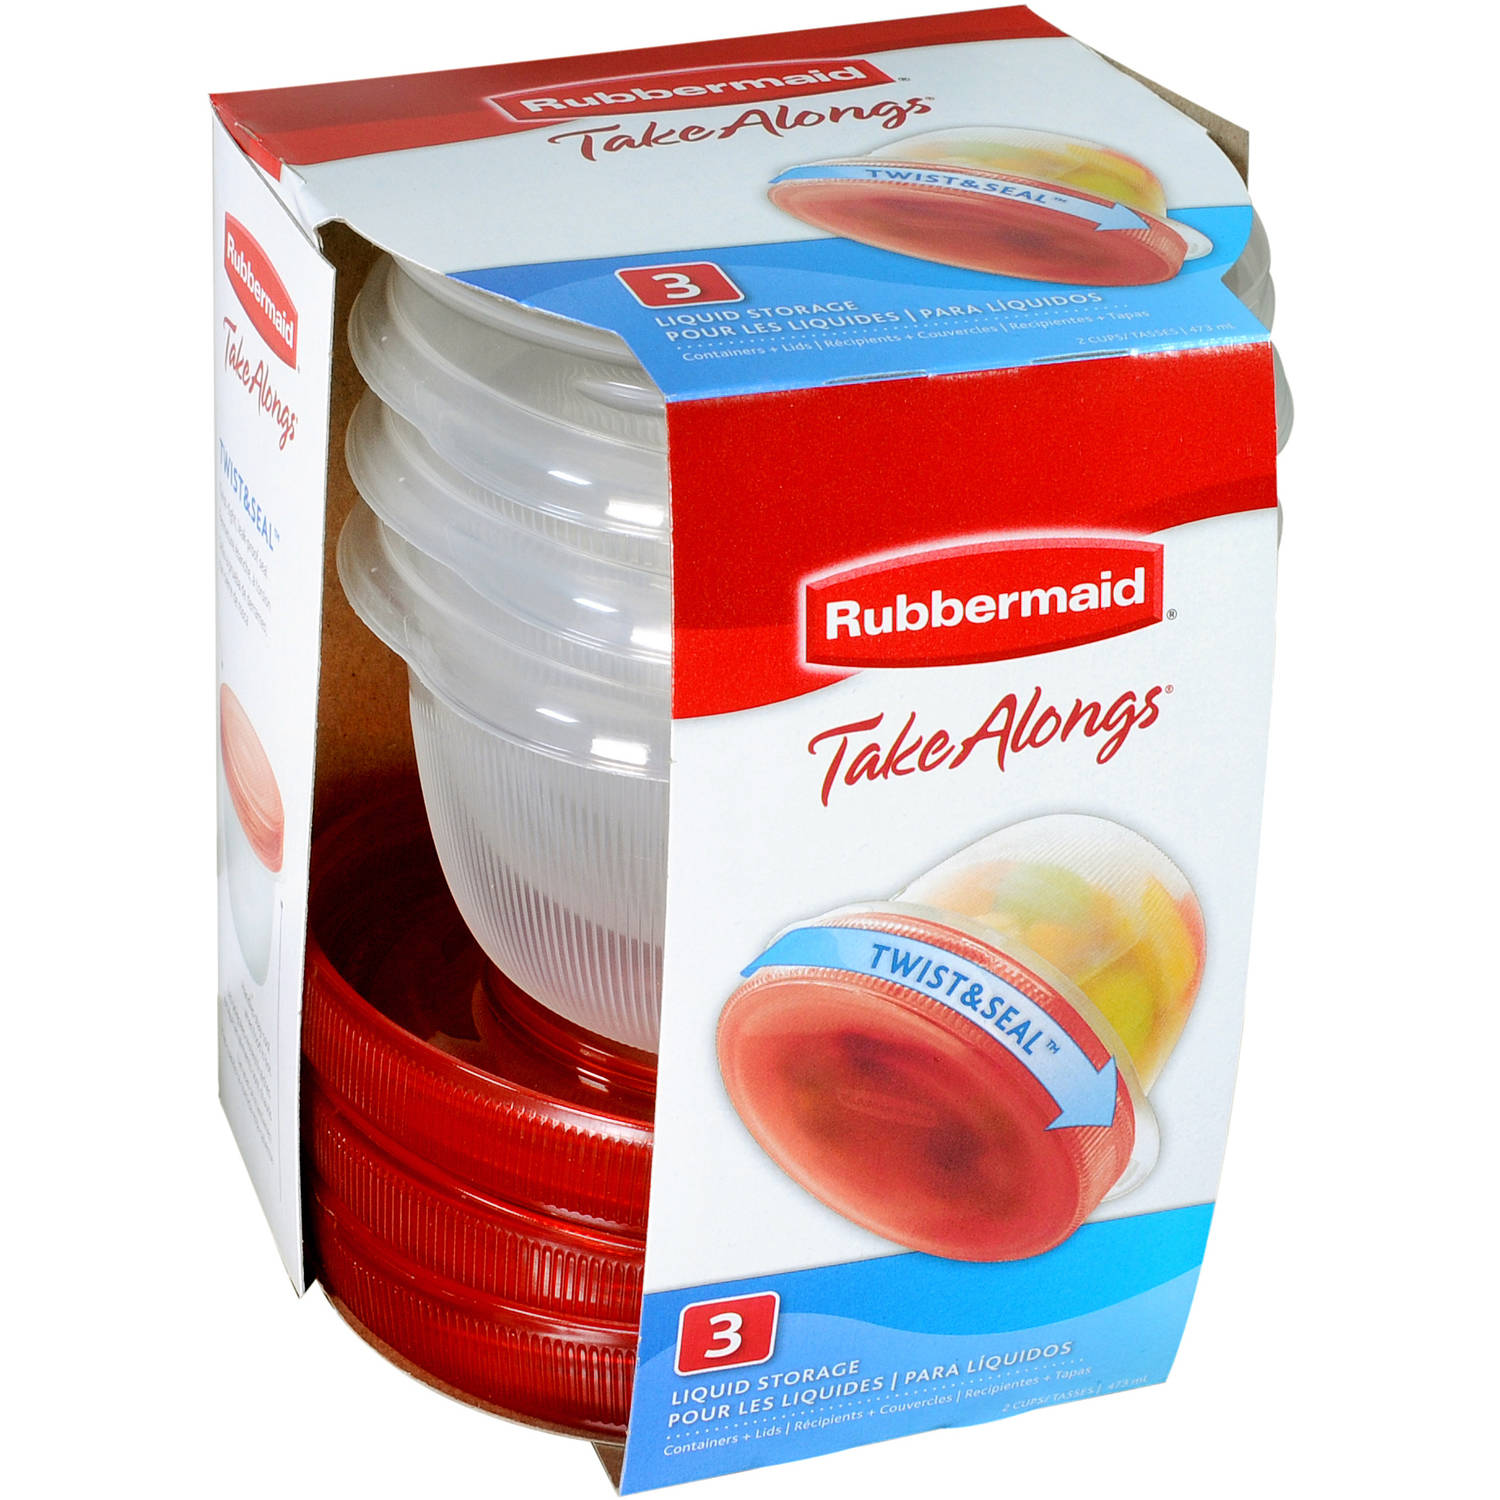 Rubbermaid TakeAlongs Twist & Seal Liquid Storage Containers, 3 count